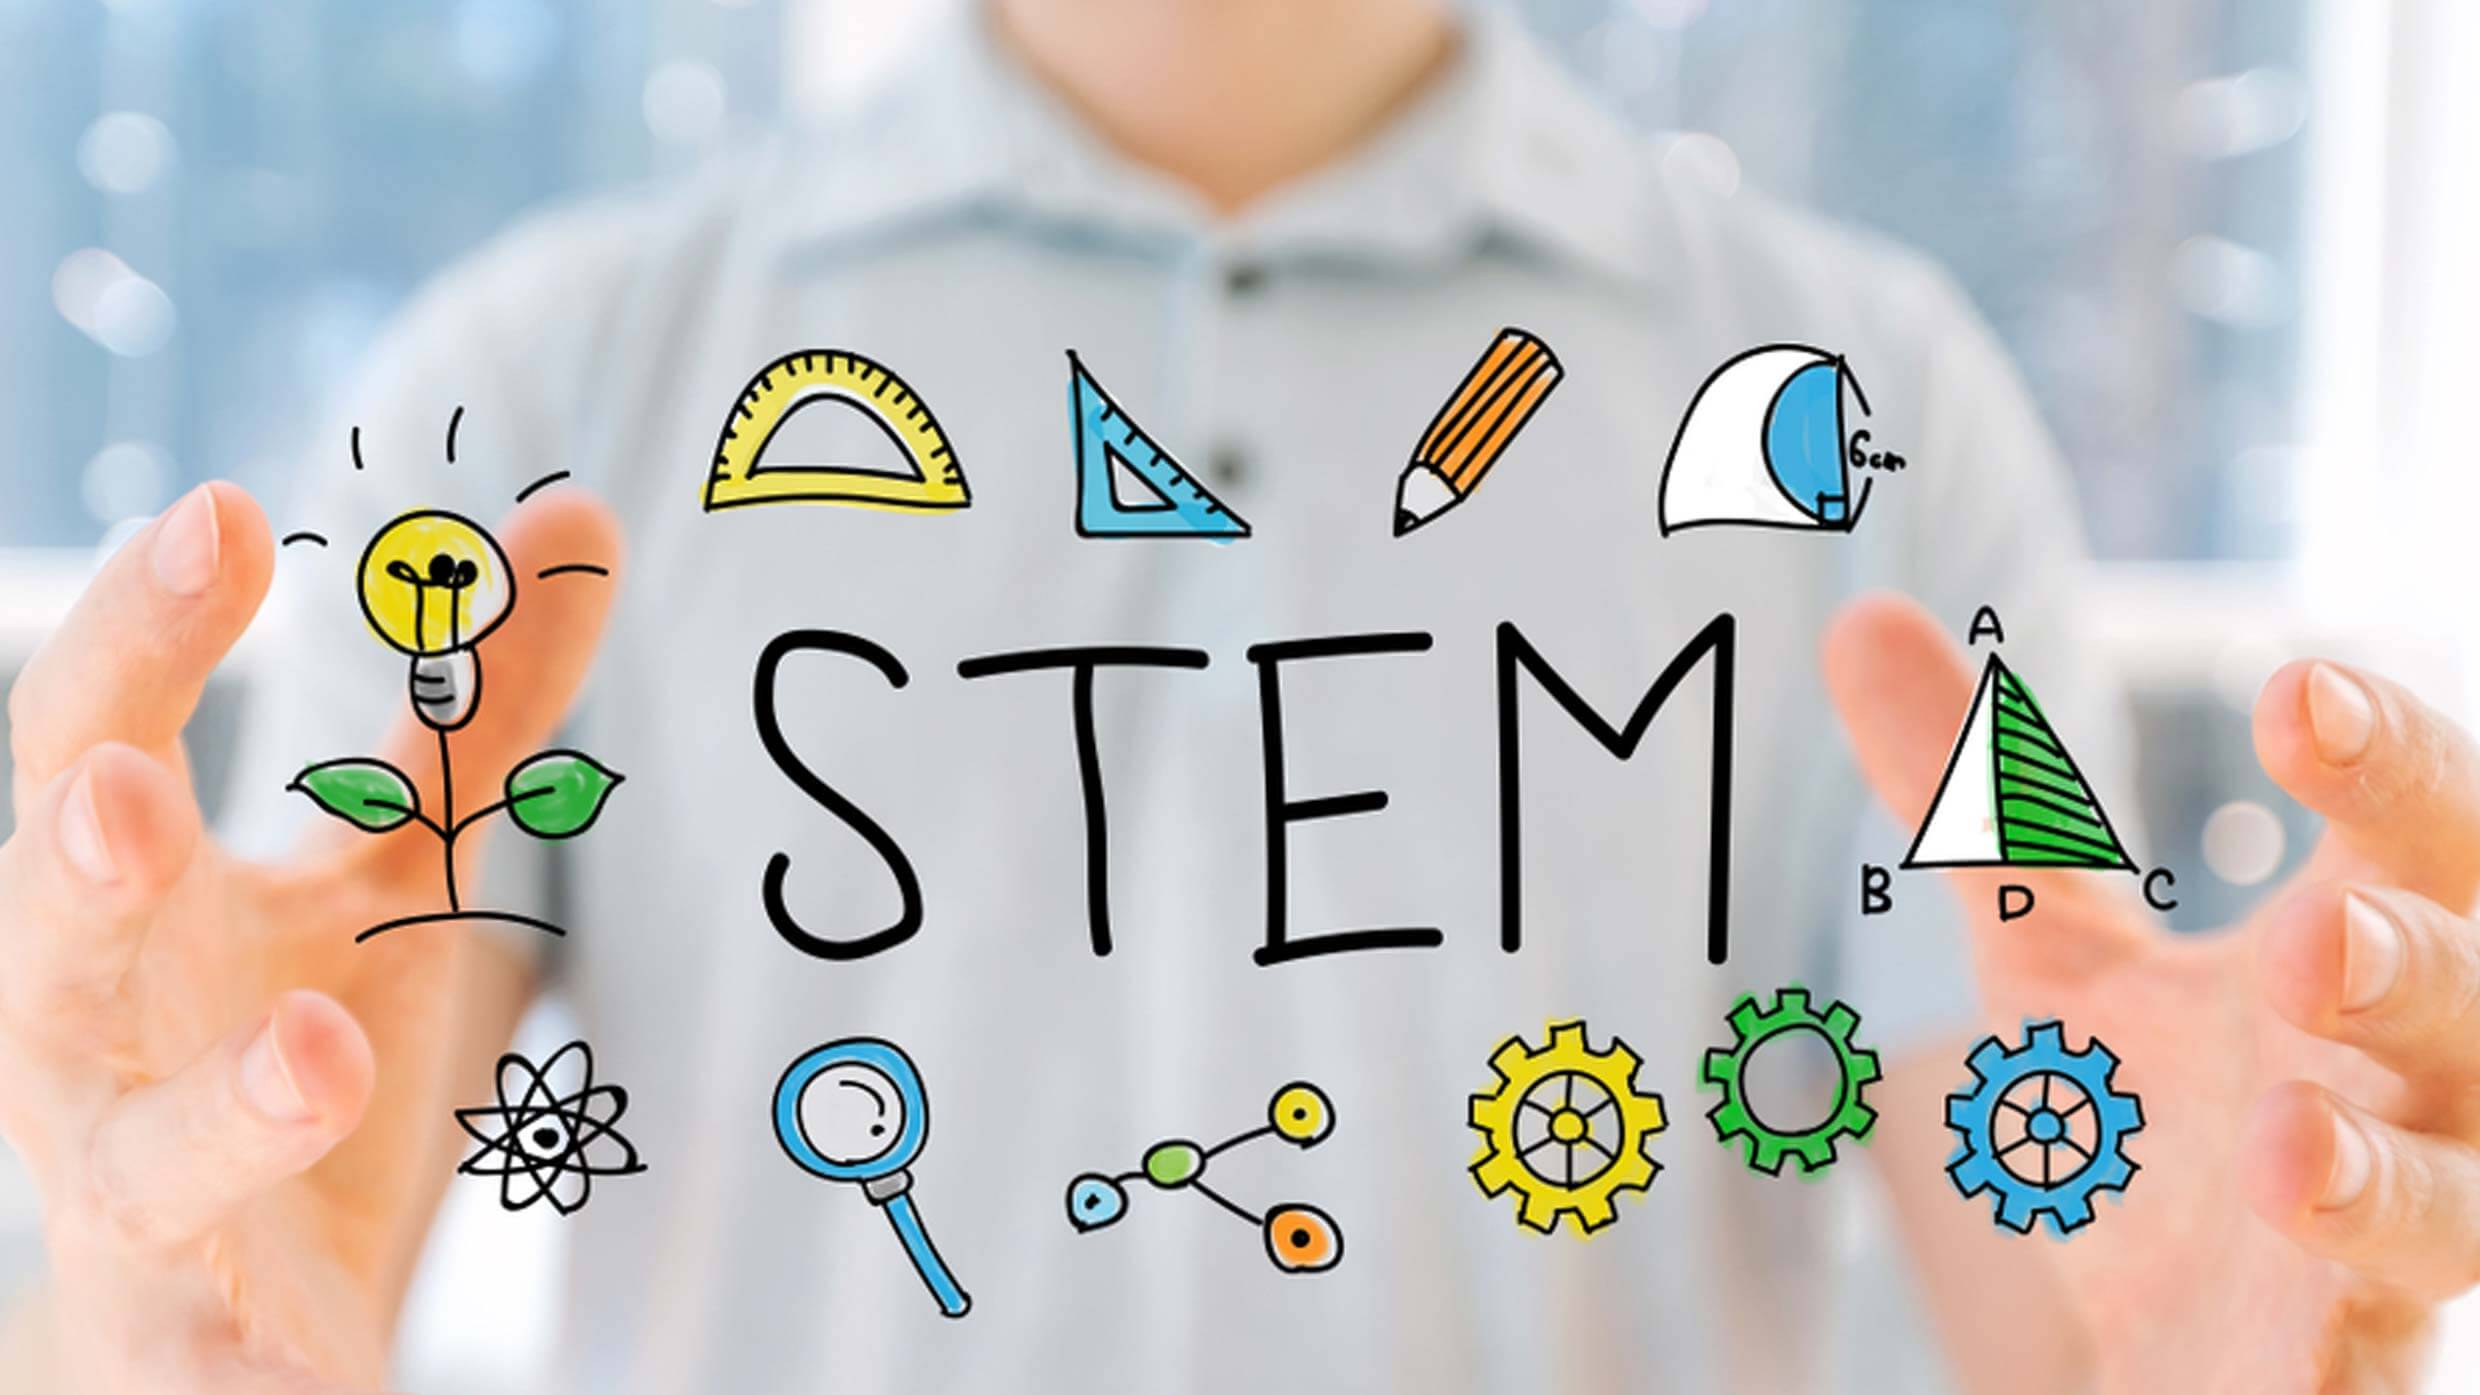 What did STEM ever do for me?